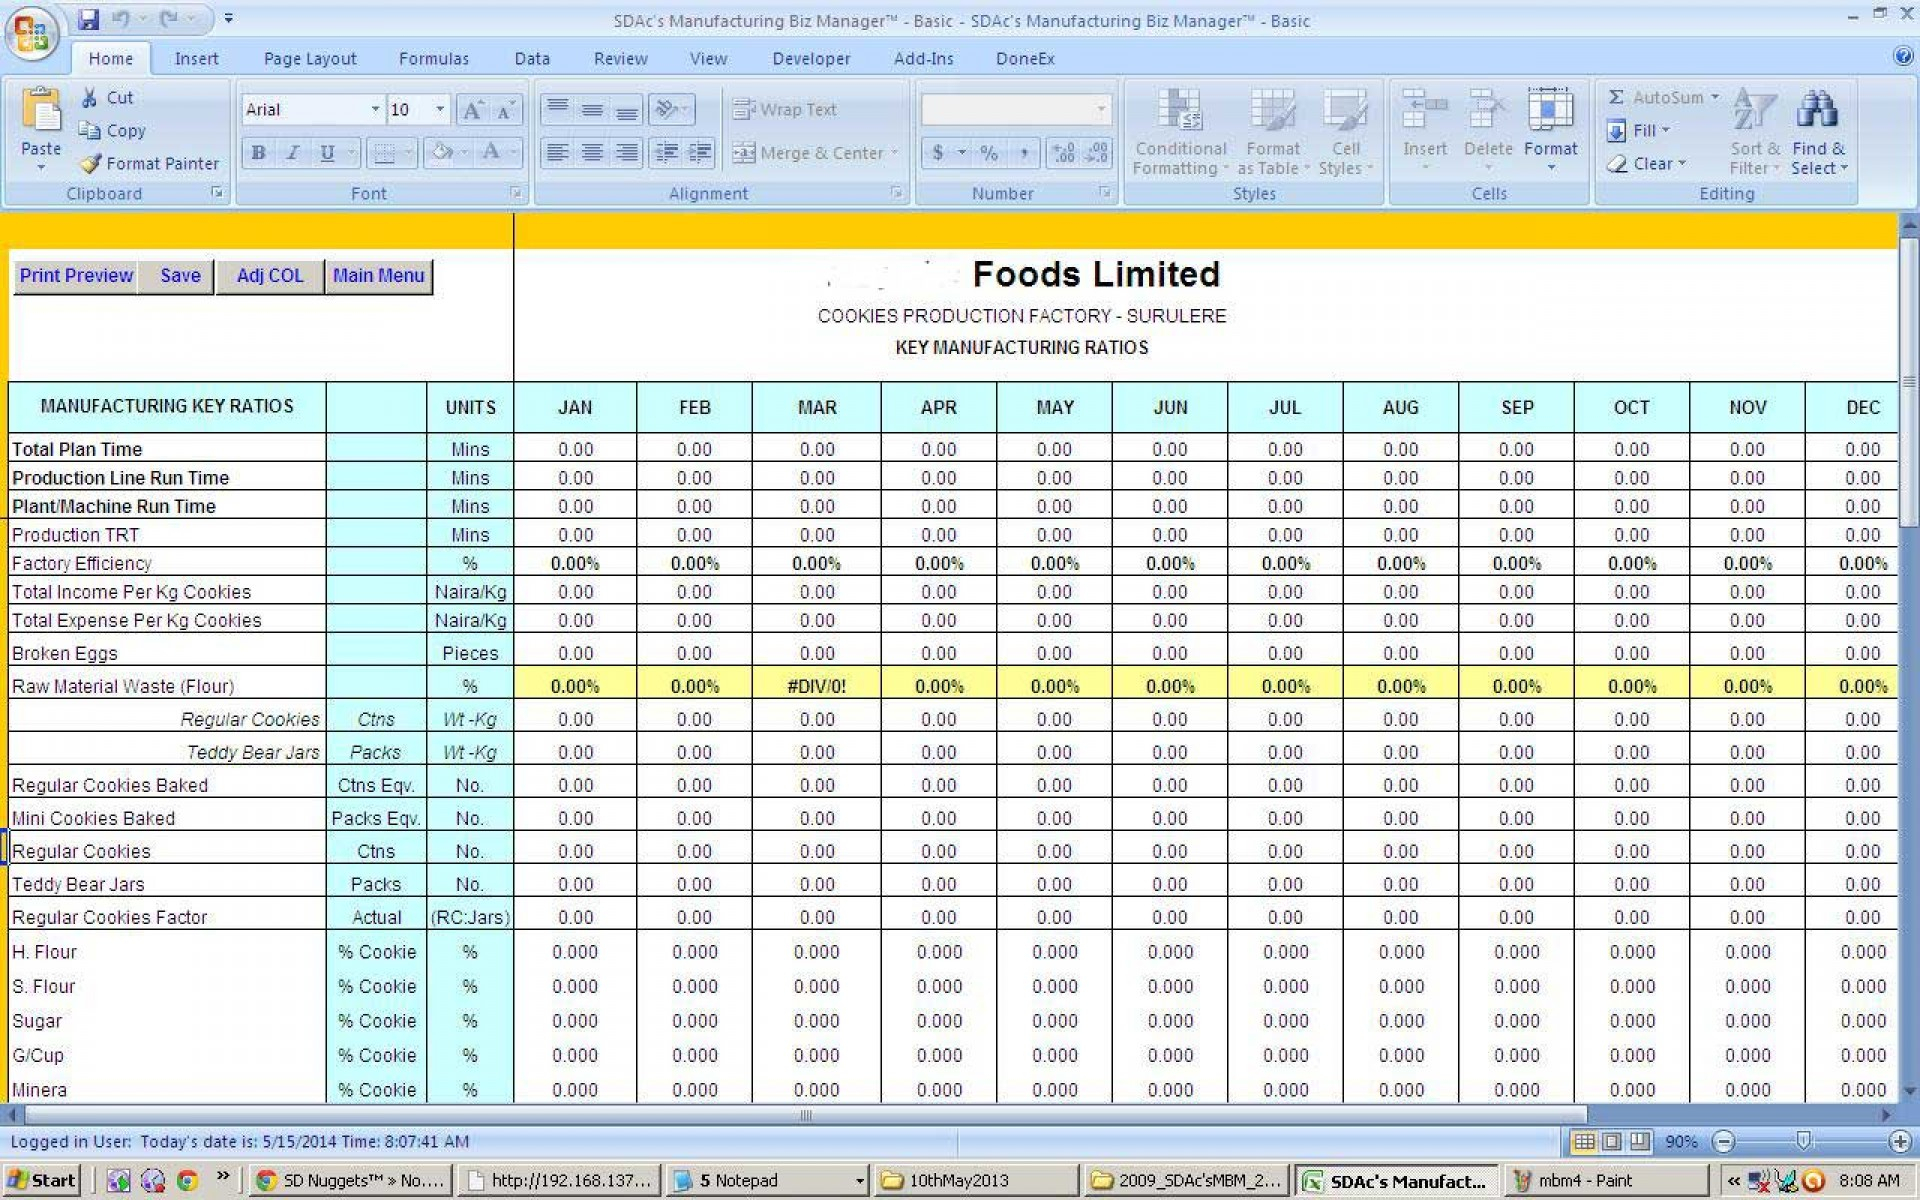 Employee Performance Tracking Spreadsheet Regarding 006 Employee Performance Tracking Template Excel Tv Show Production